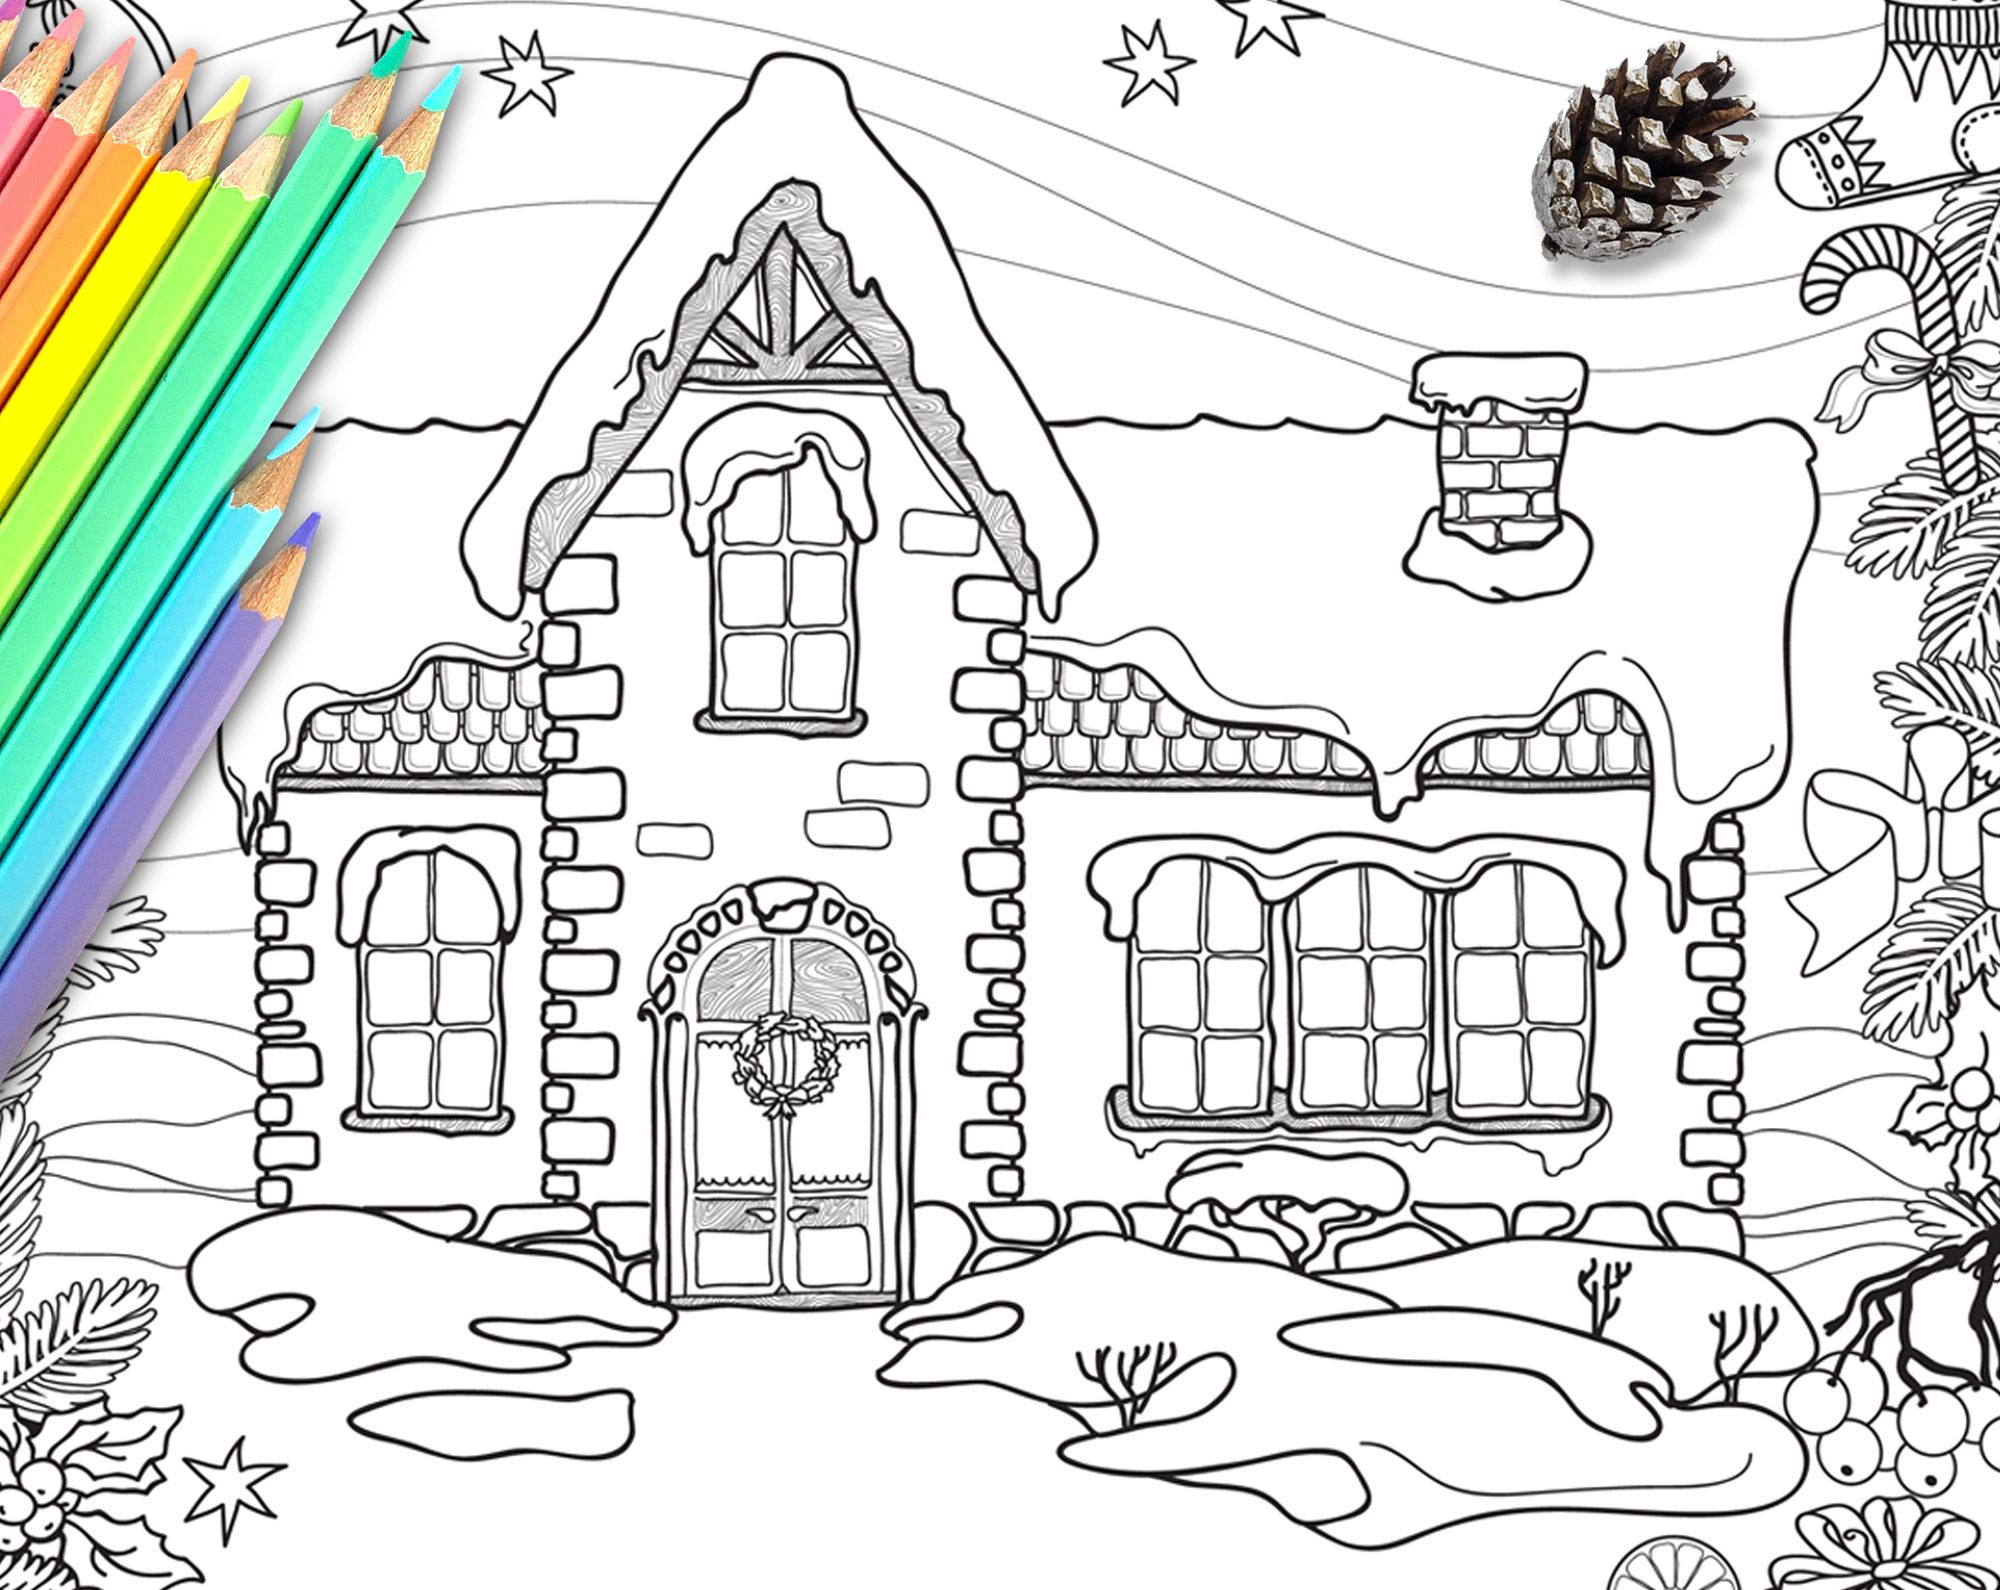 Pin On Christmas Coloring Pages For Adult And Kids